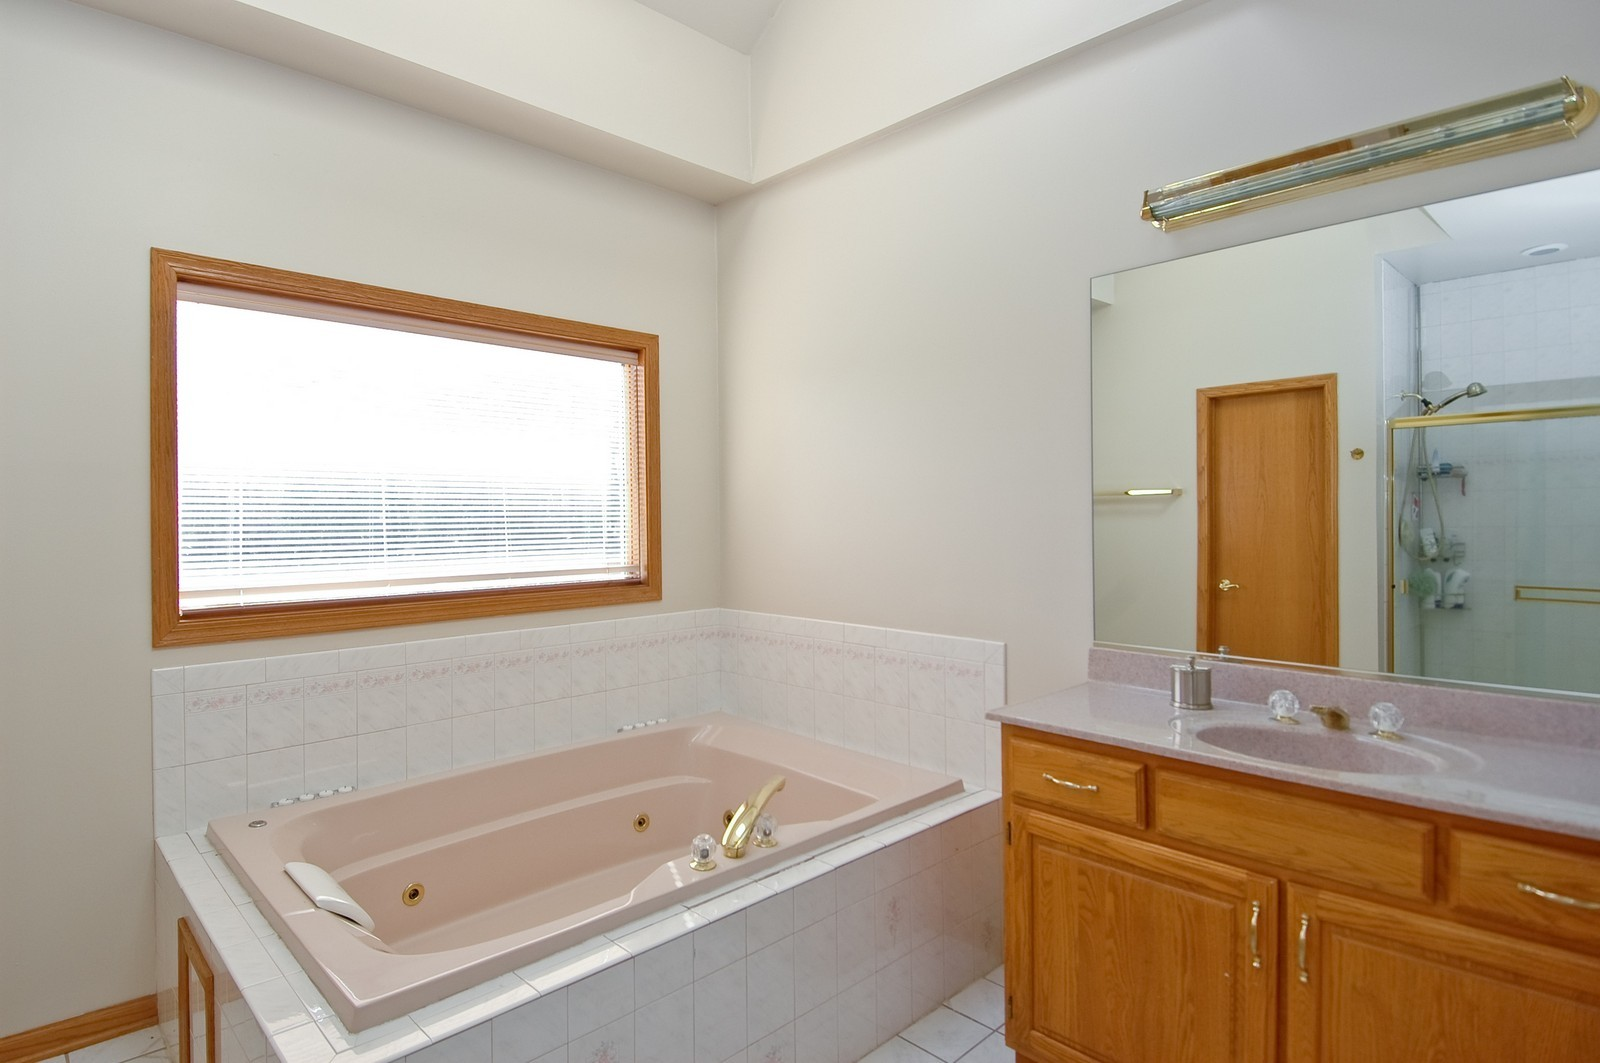 Real Estate Photography - 7N598 Whirlaway Dr, St Charles, IL, 60175 - Master Bathroom